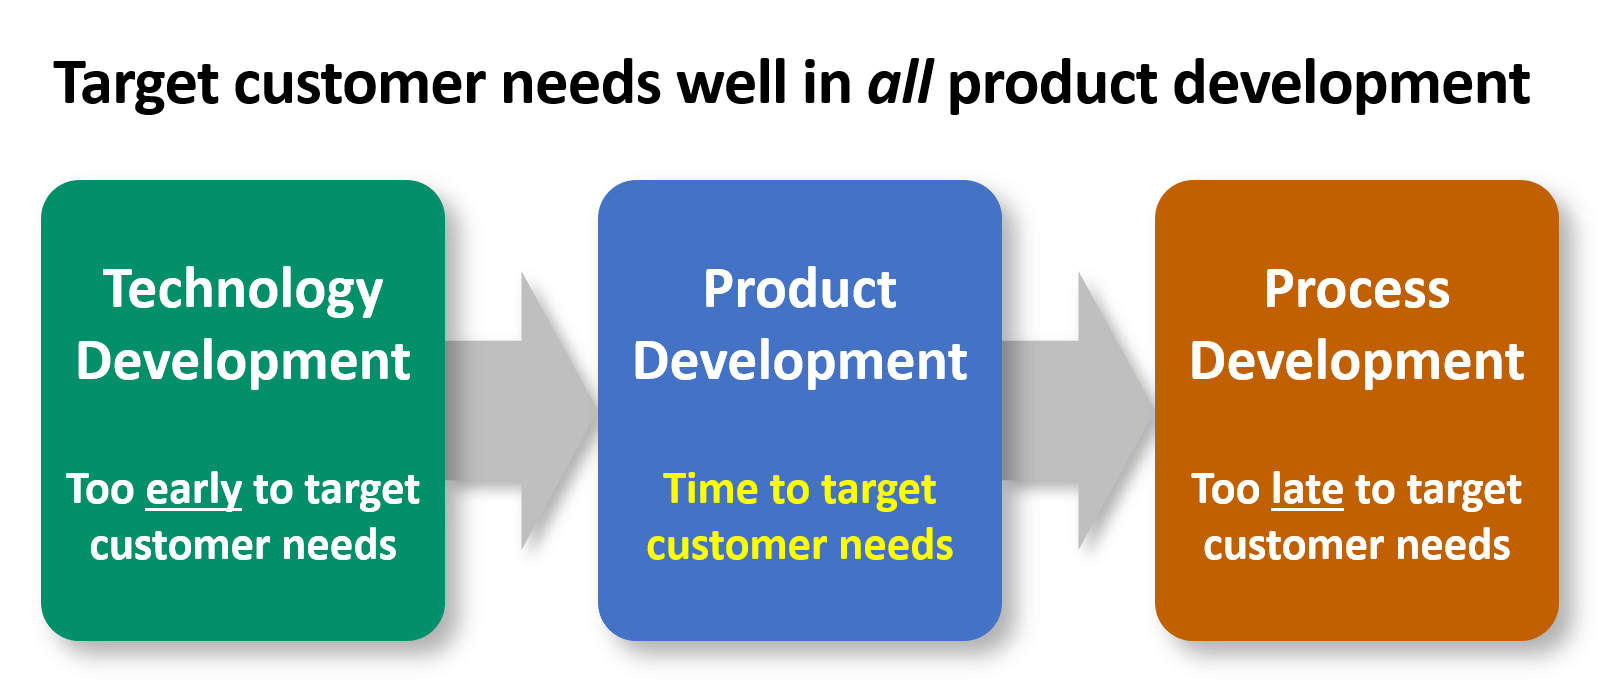 Target-customer-needs-in-product-development